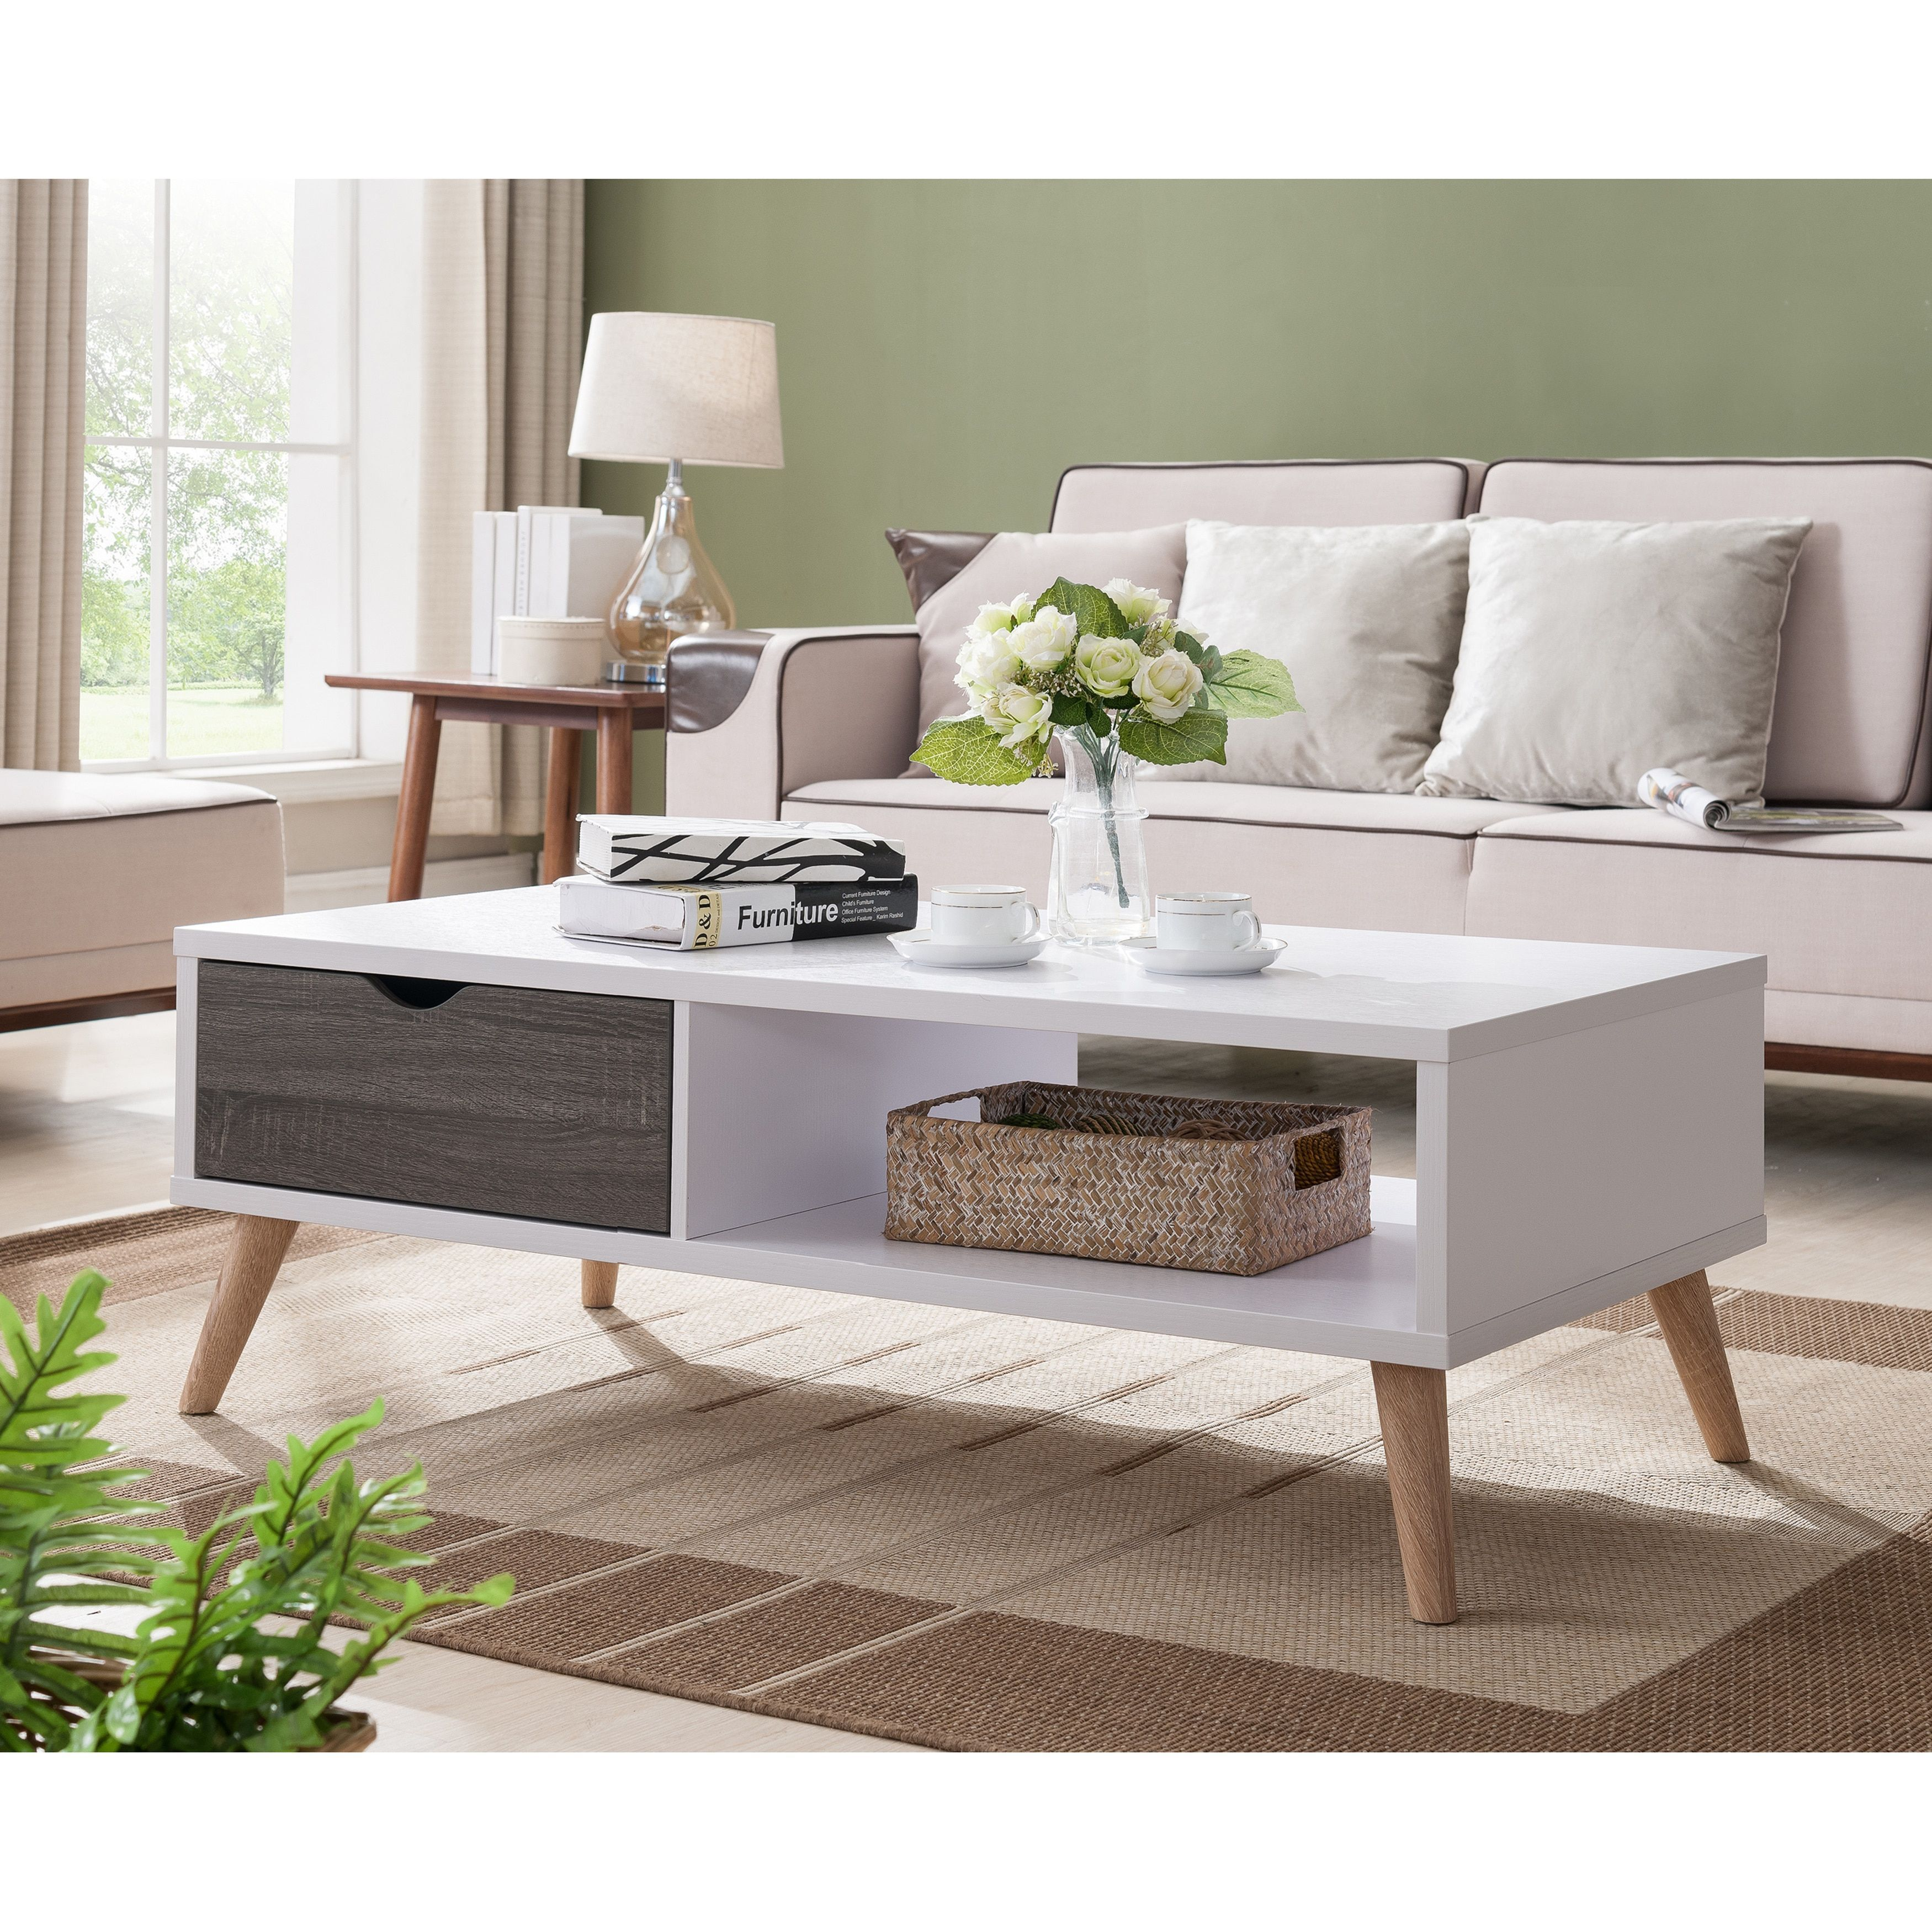 Furniture Of America Arella II Mid Century Modern 2 Tone Distressed Grey White Coffee